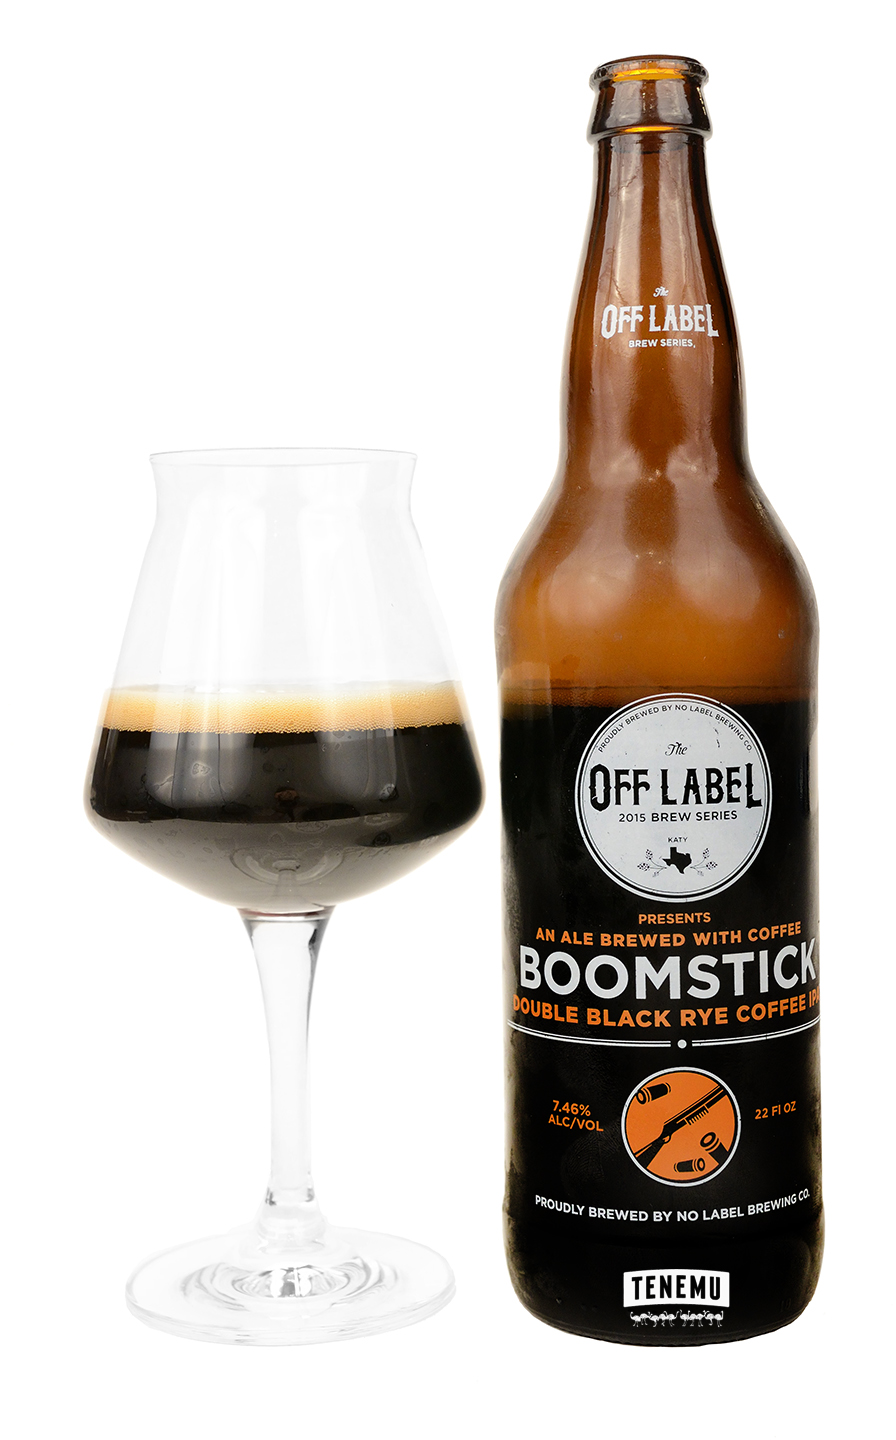 No Label Boomstick Double Black Rye Coffee IPA